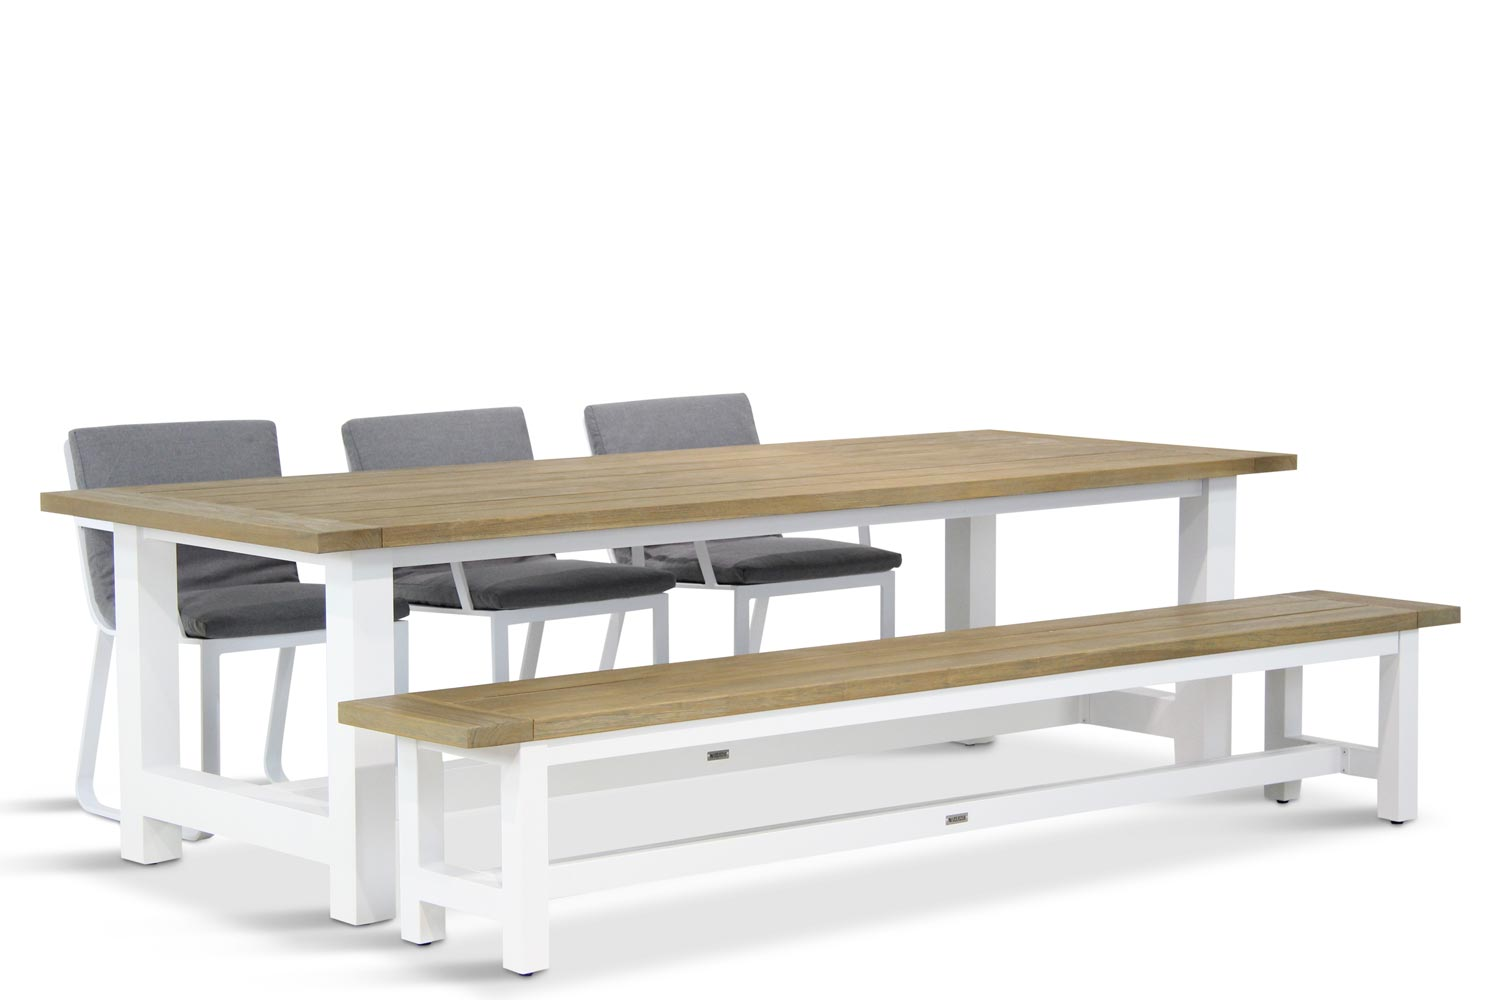 Lifestyle Estancia/Los Angeles 260 cm dining tuinsets 5-delig